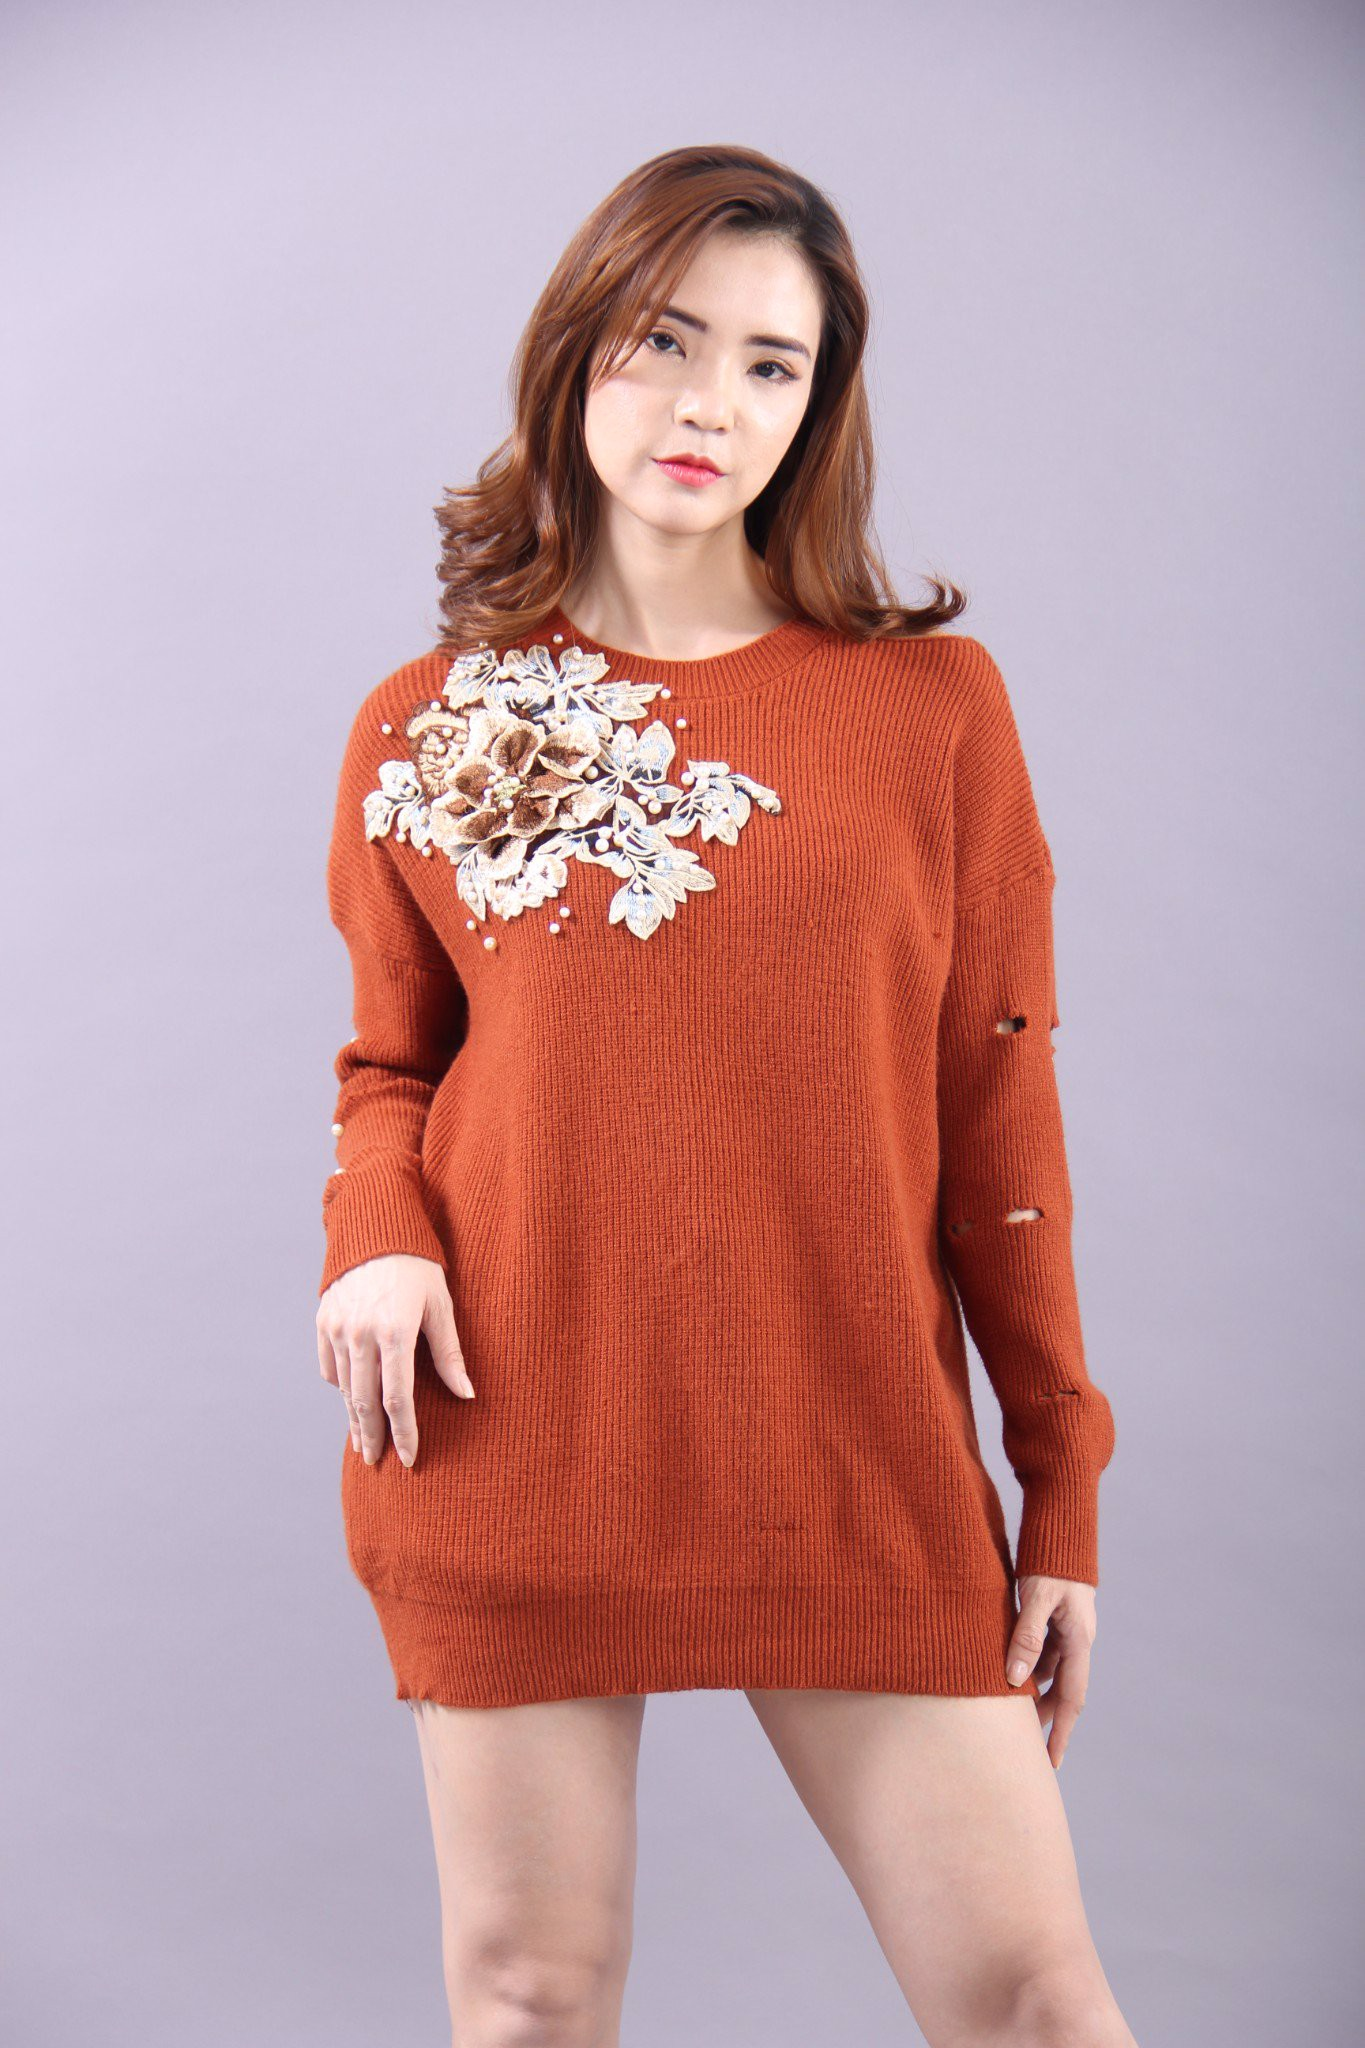 3D peony and pearls embroided on brown long sleeves tunic top